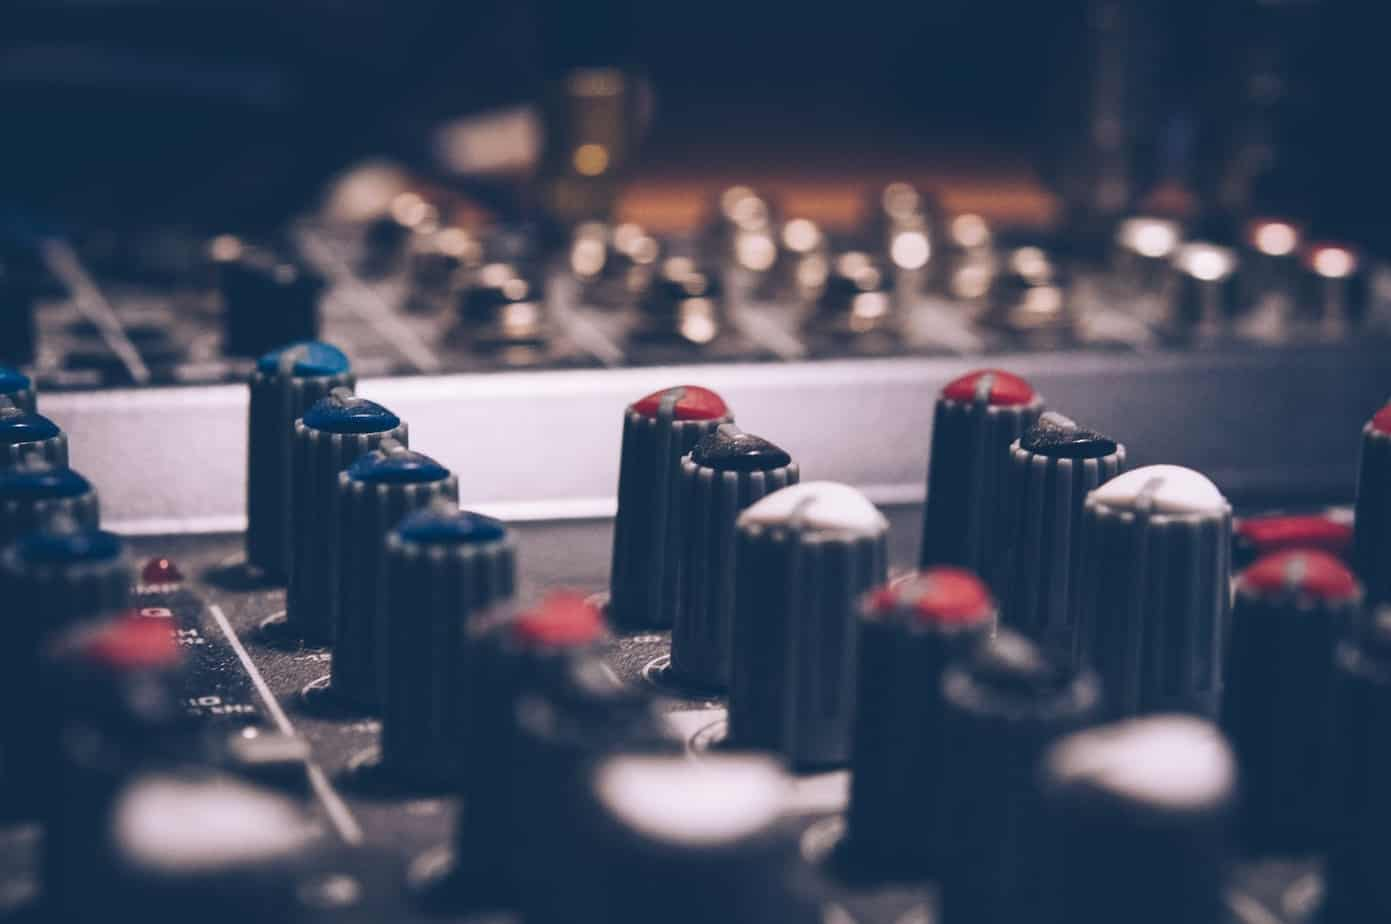 mastering your own mixes